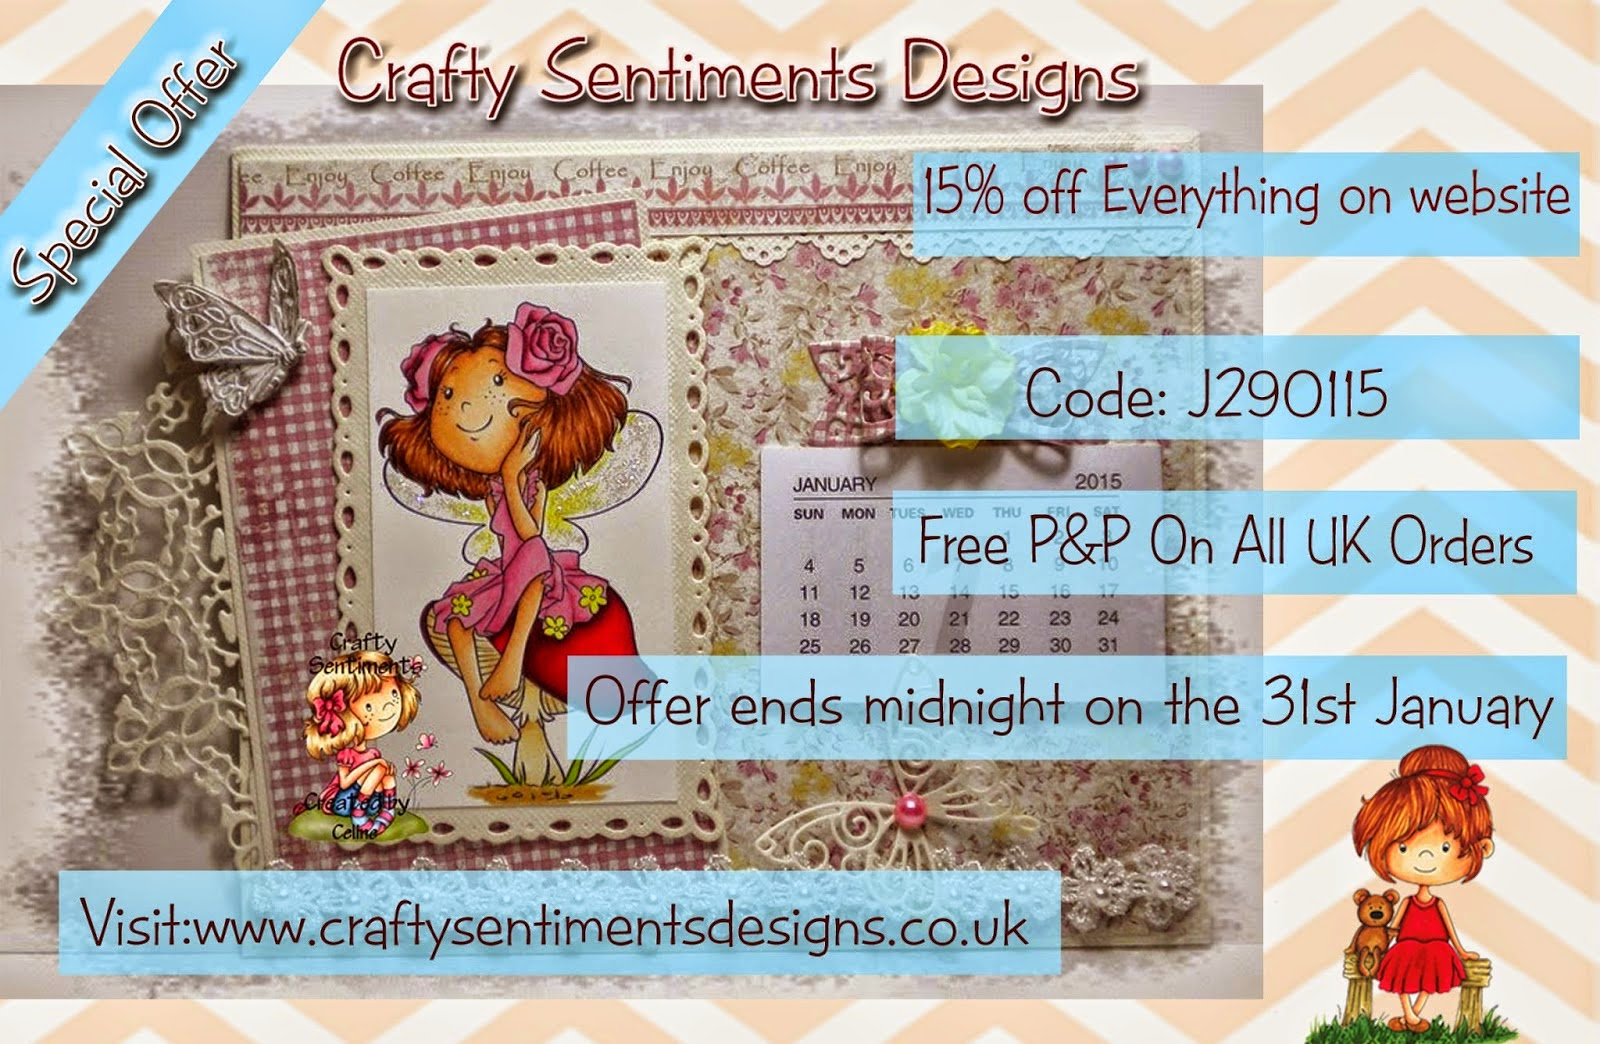 Crafty Sentiments Designs Sale!!